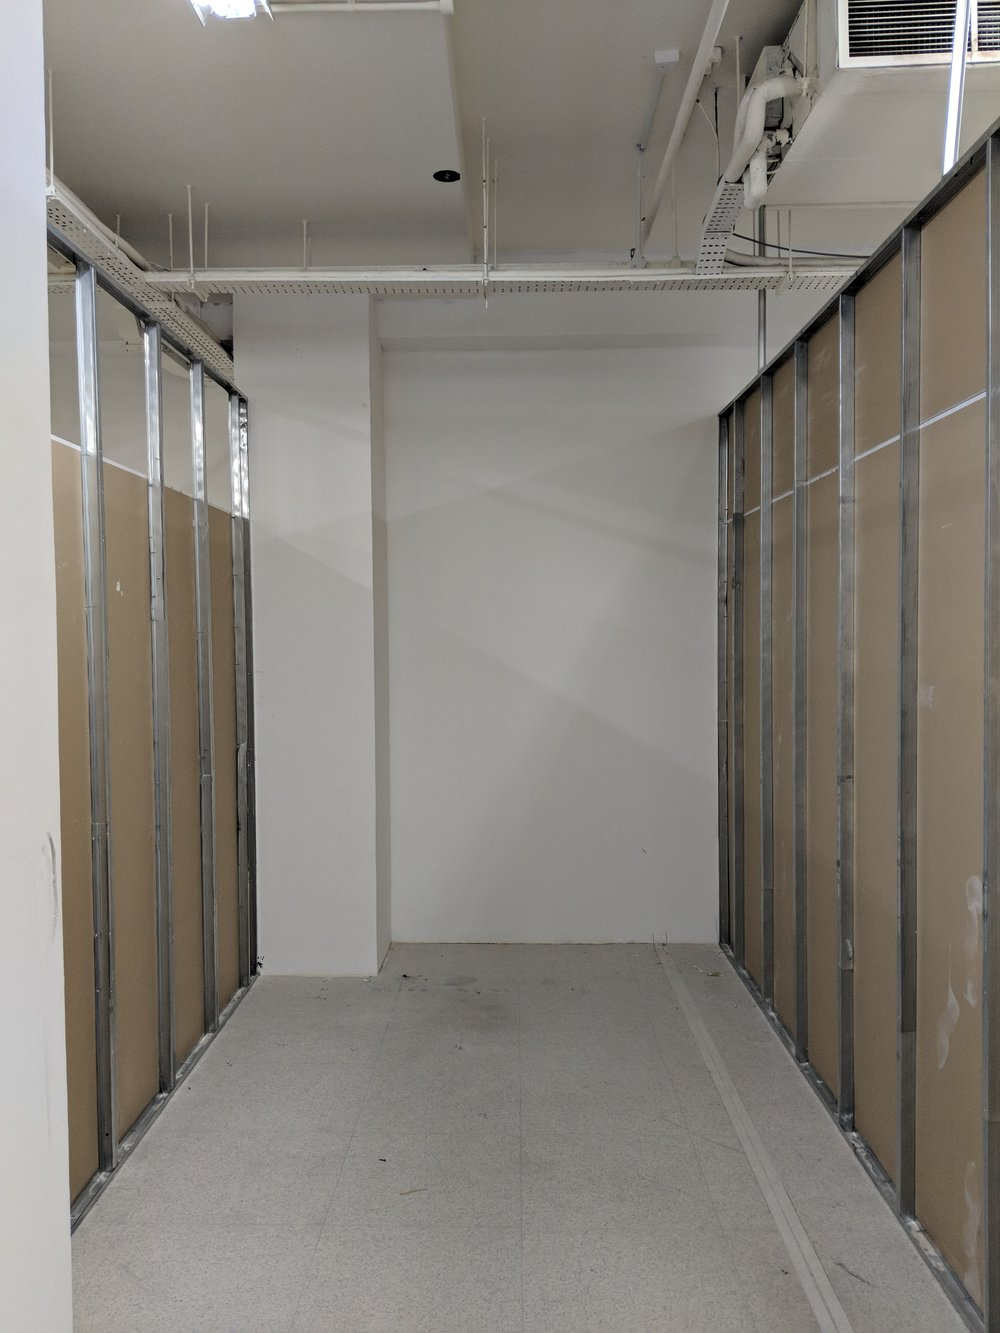 Late May - storage area